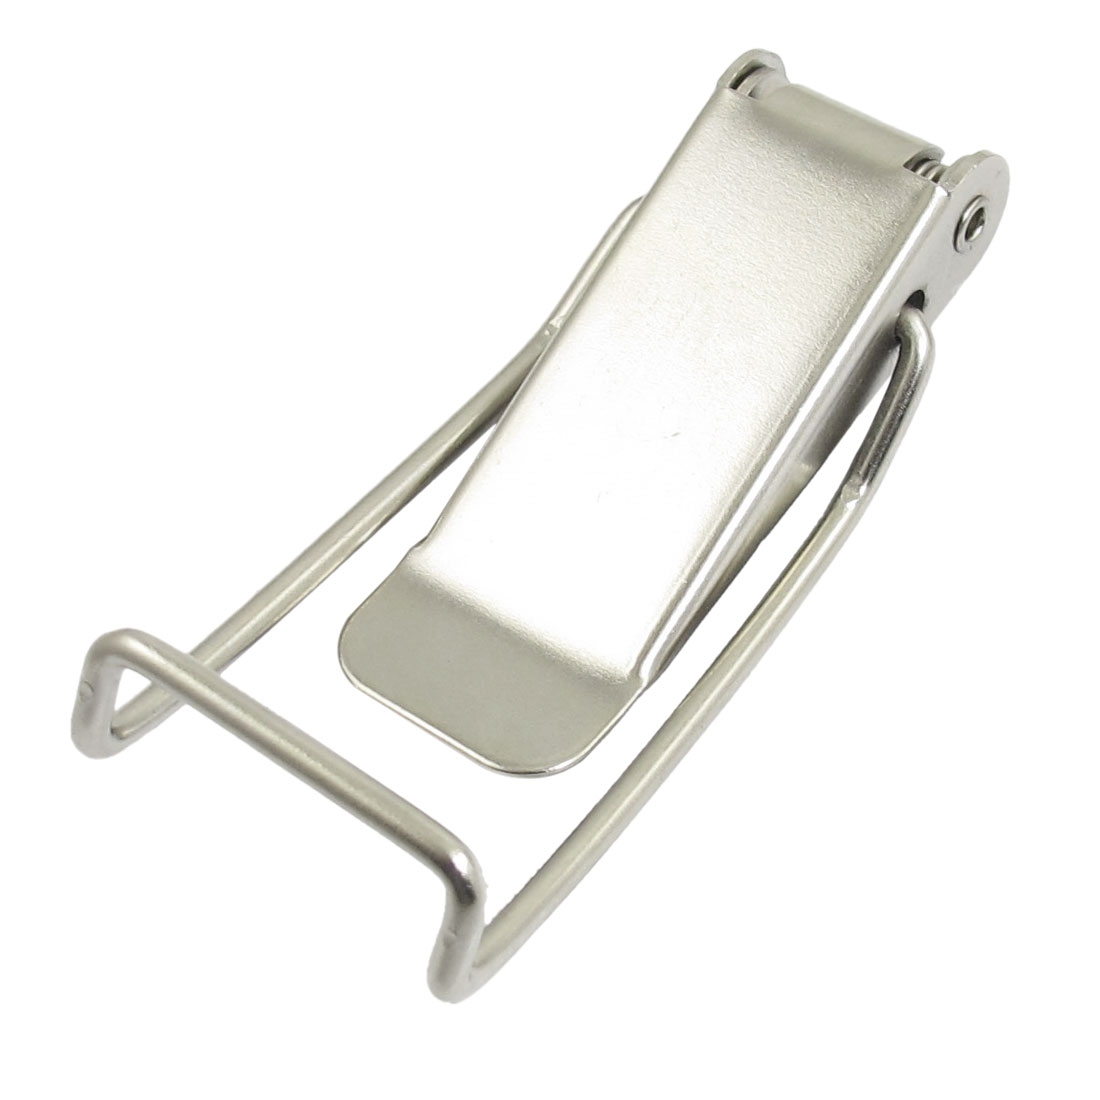 """Toolbox Case Hardware 4.5"""" Long Iron Toggle Latch Catch"""